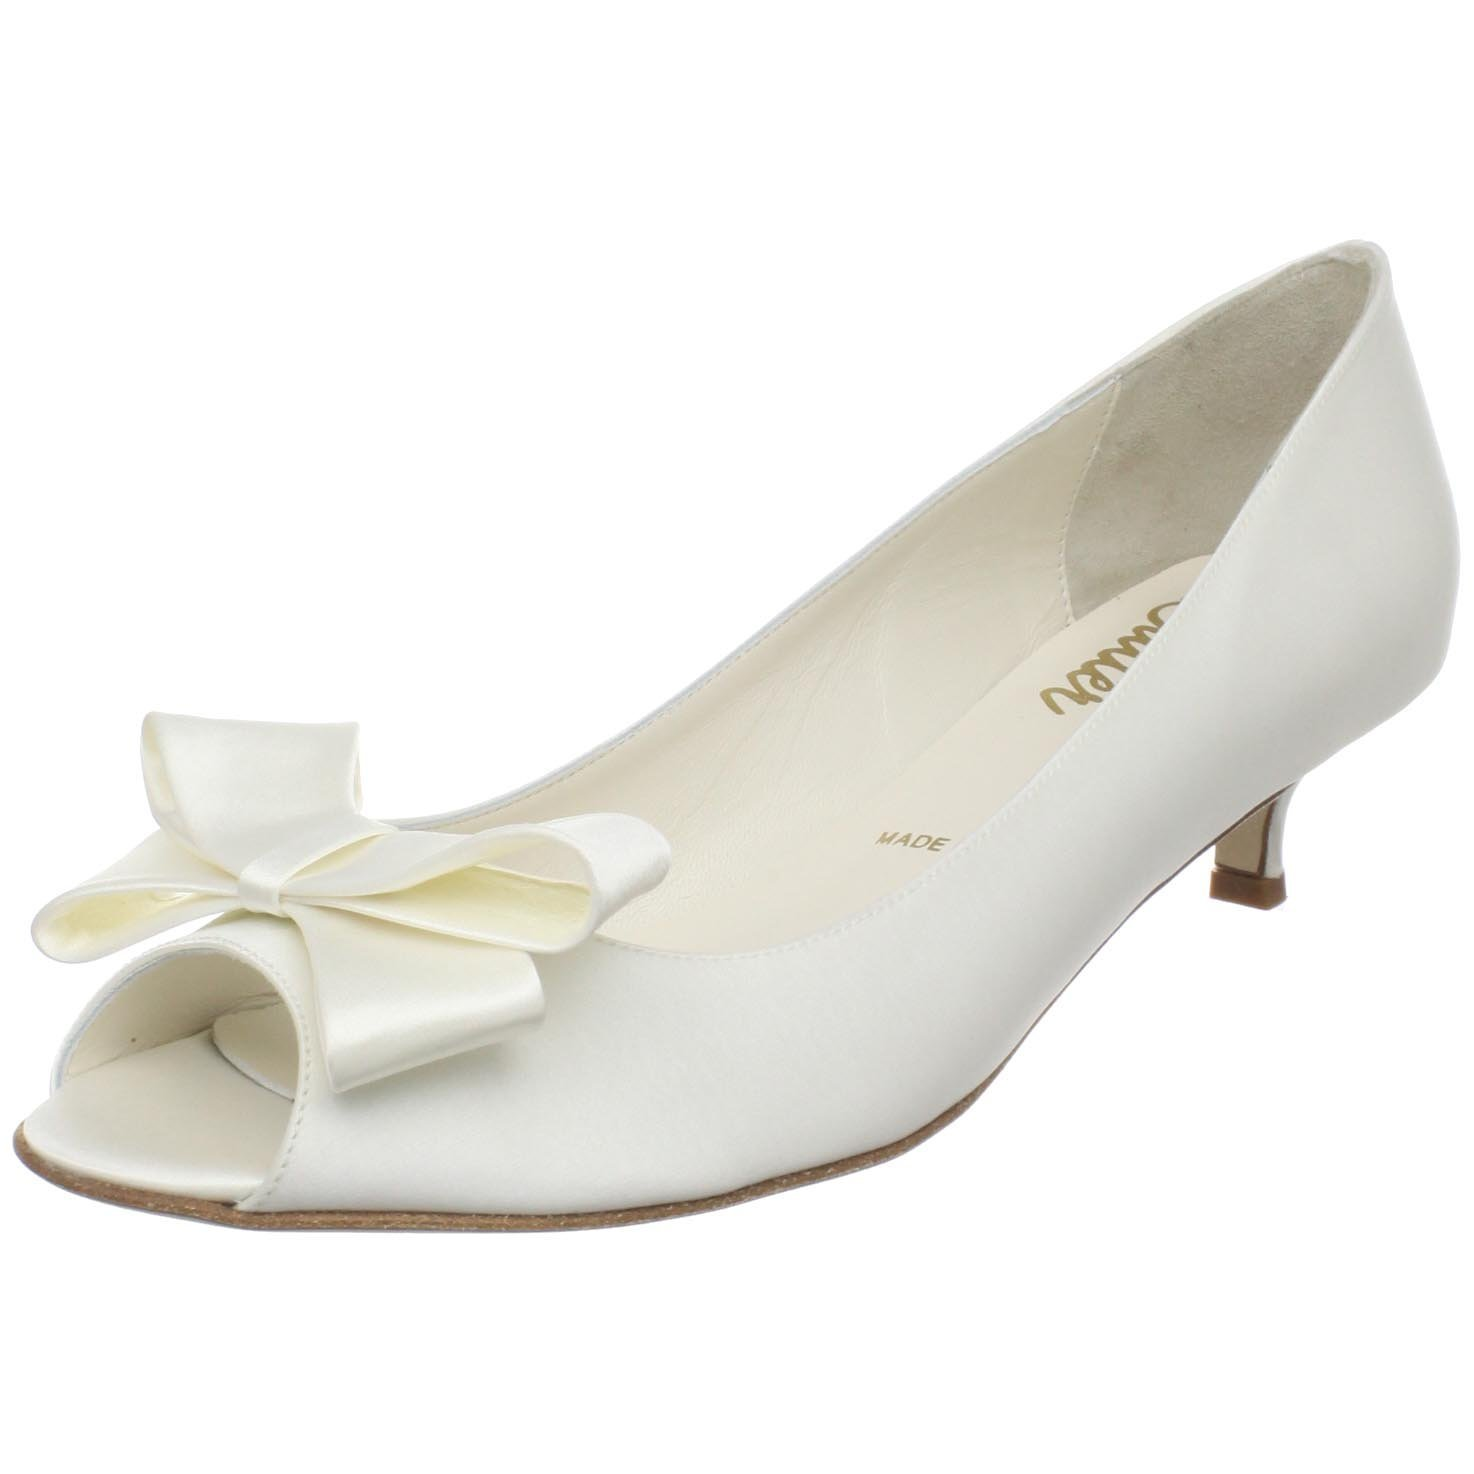 wedding kitten heel shoes photo - 1